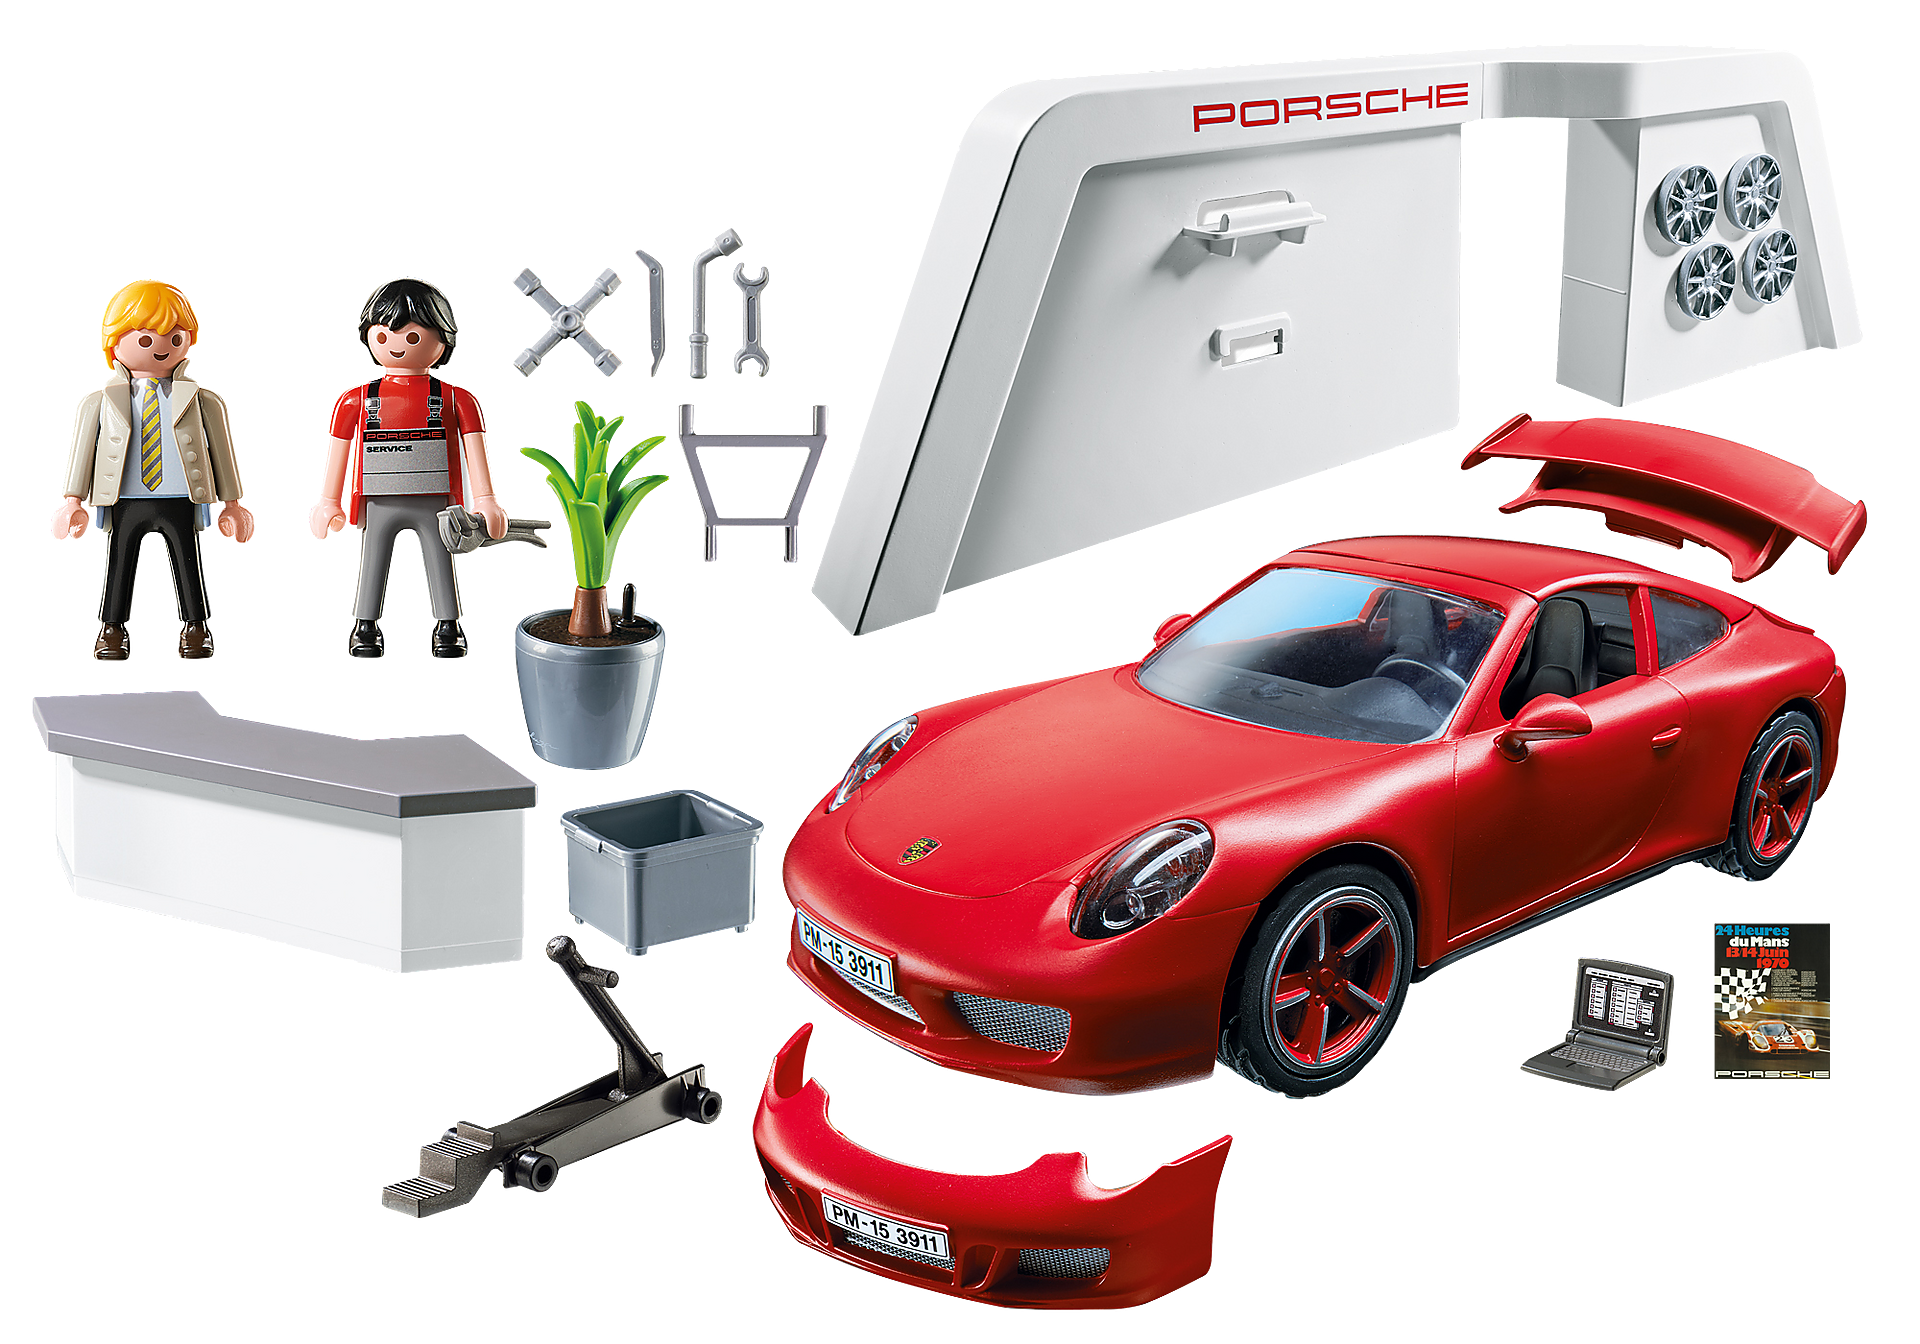 http://media.playmobil.com/i/playmobil/3911_product_box_back/Porsche 911 Carrera S